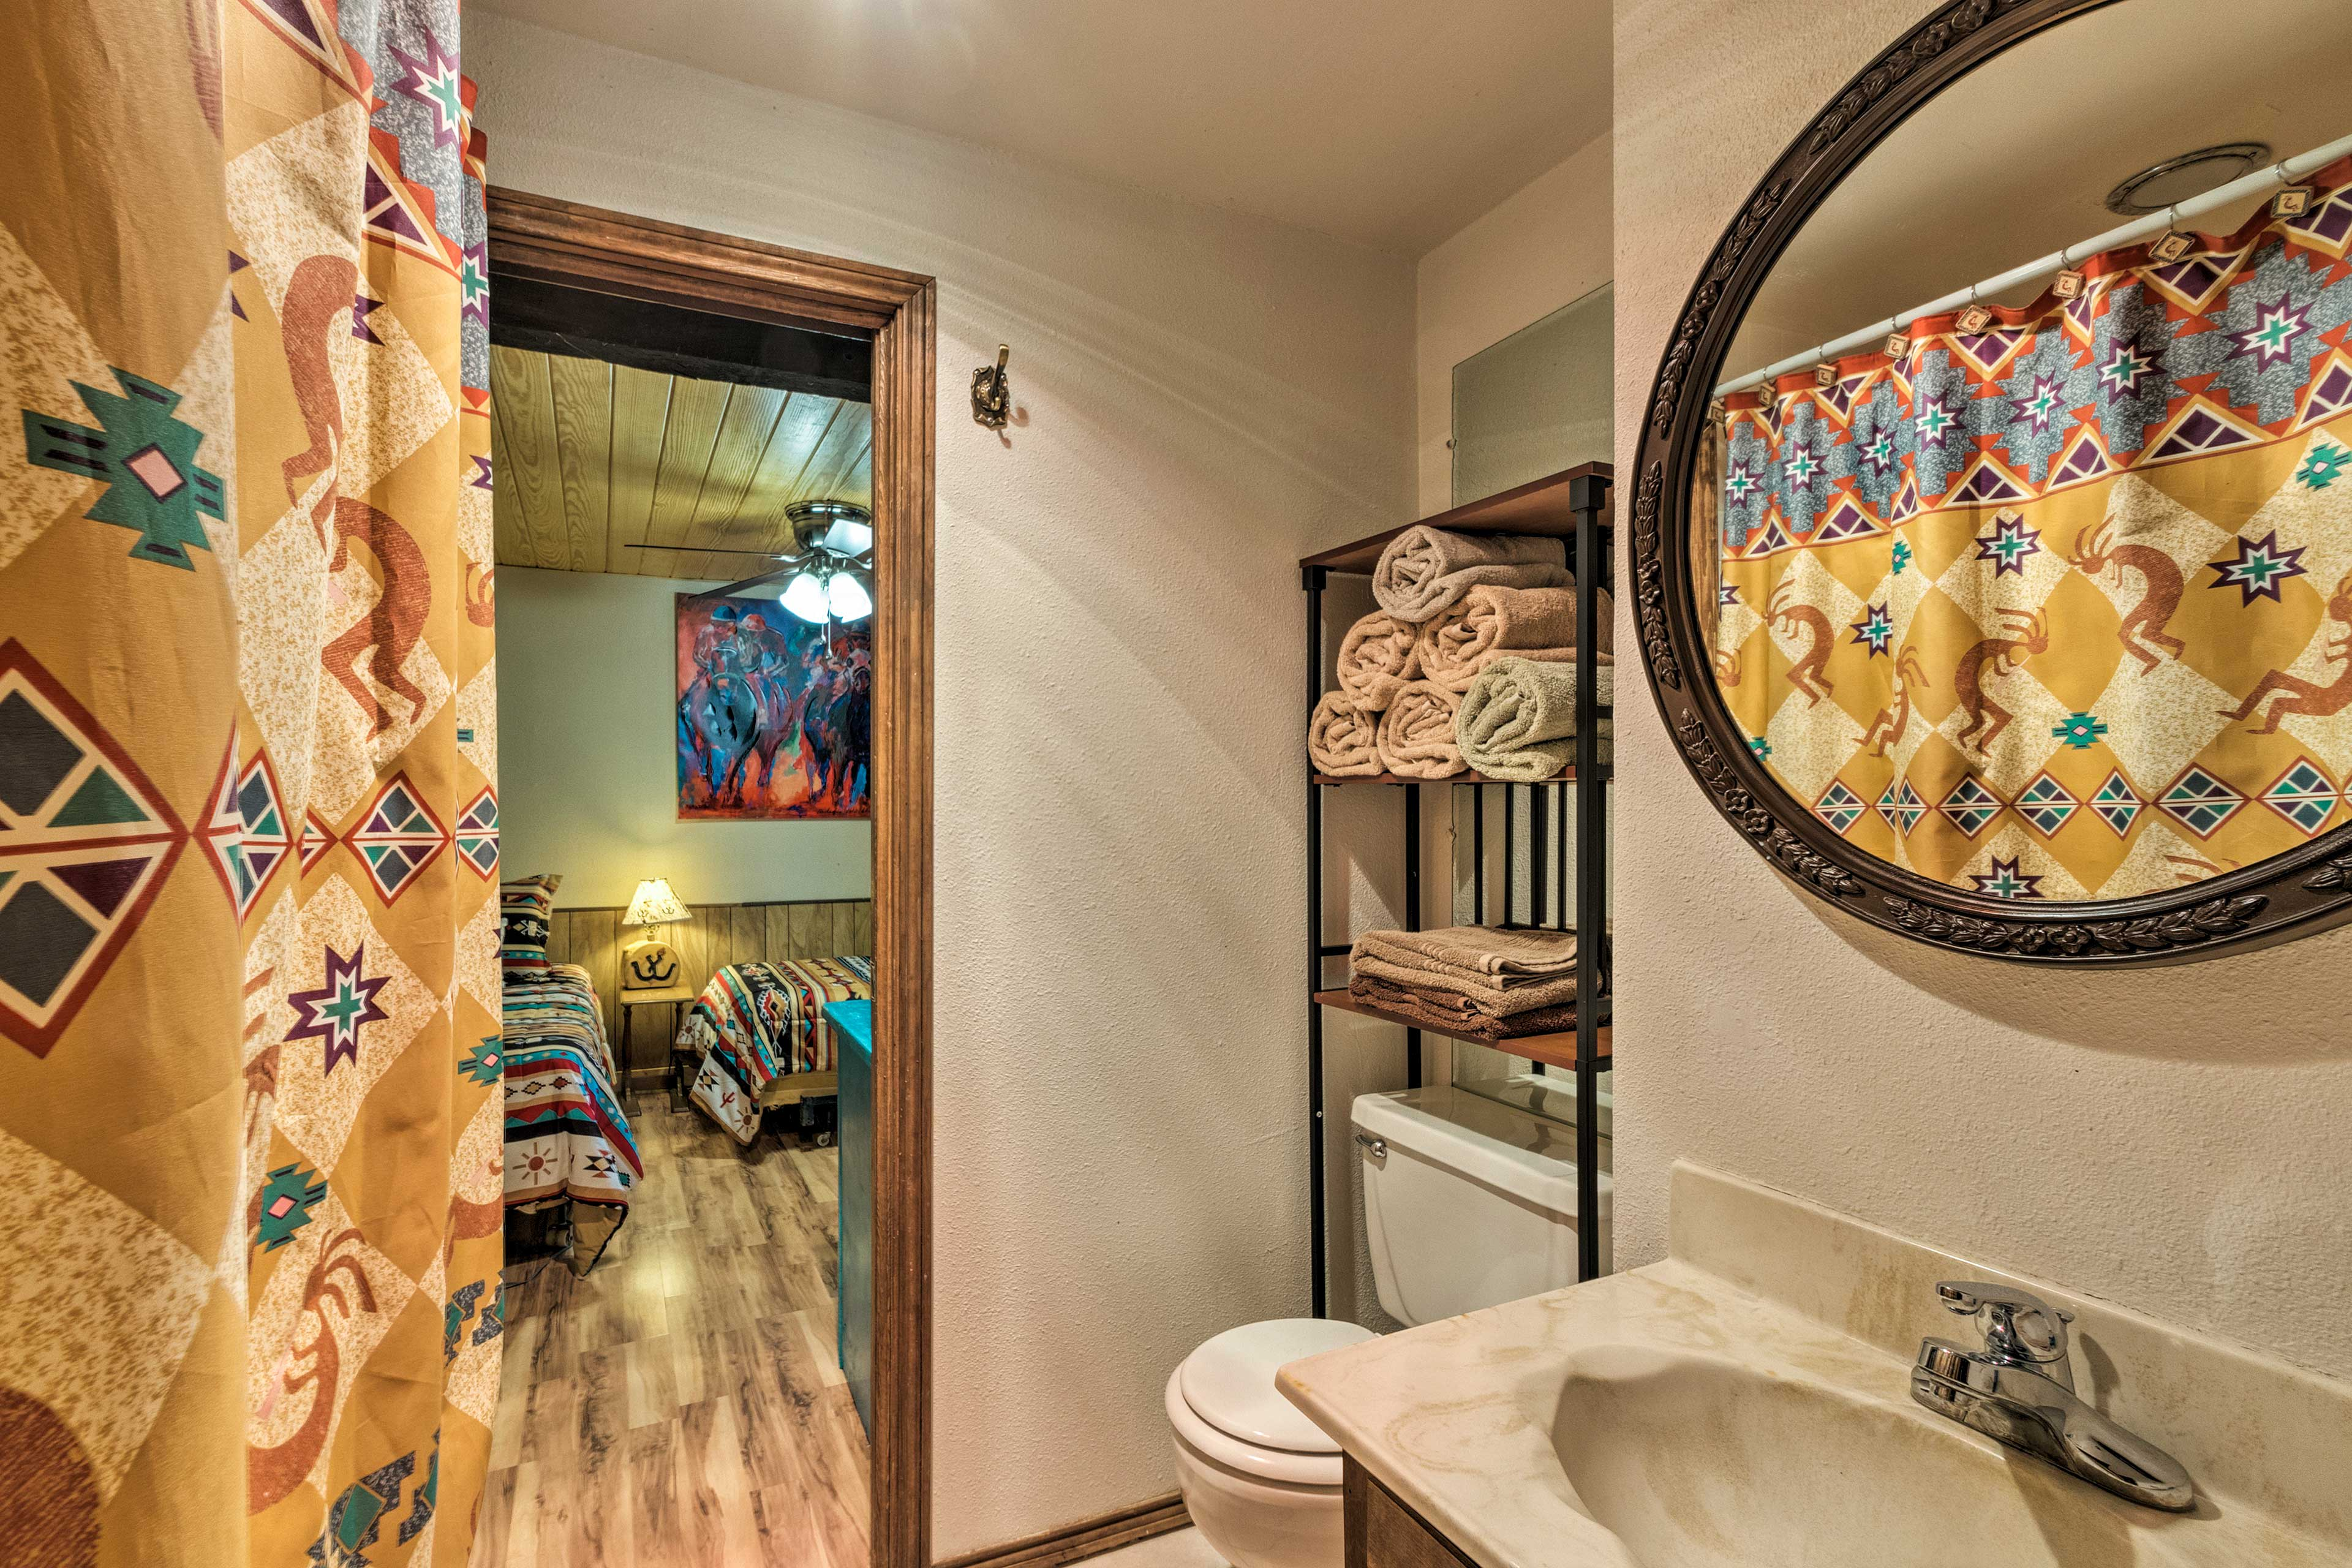 This is a jack-and-jill style bathroom.